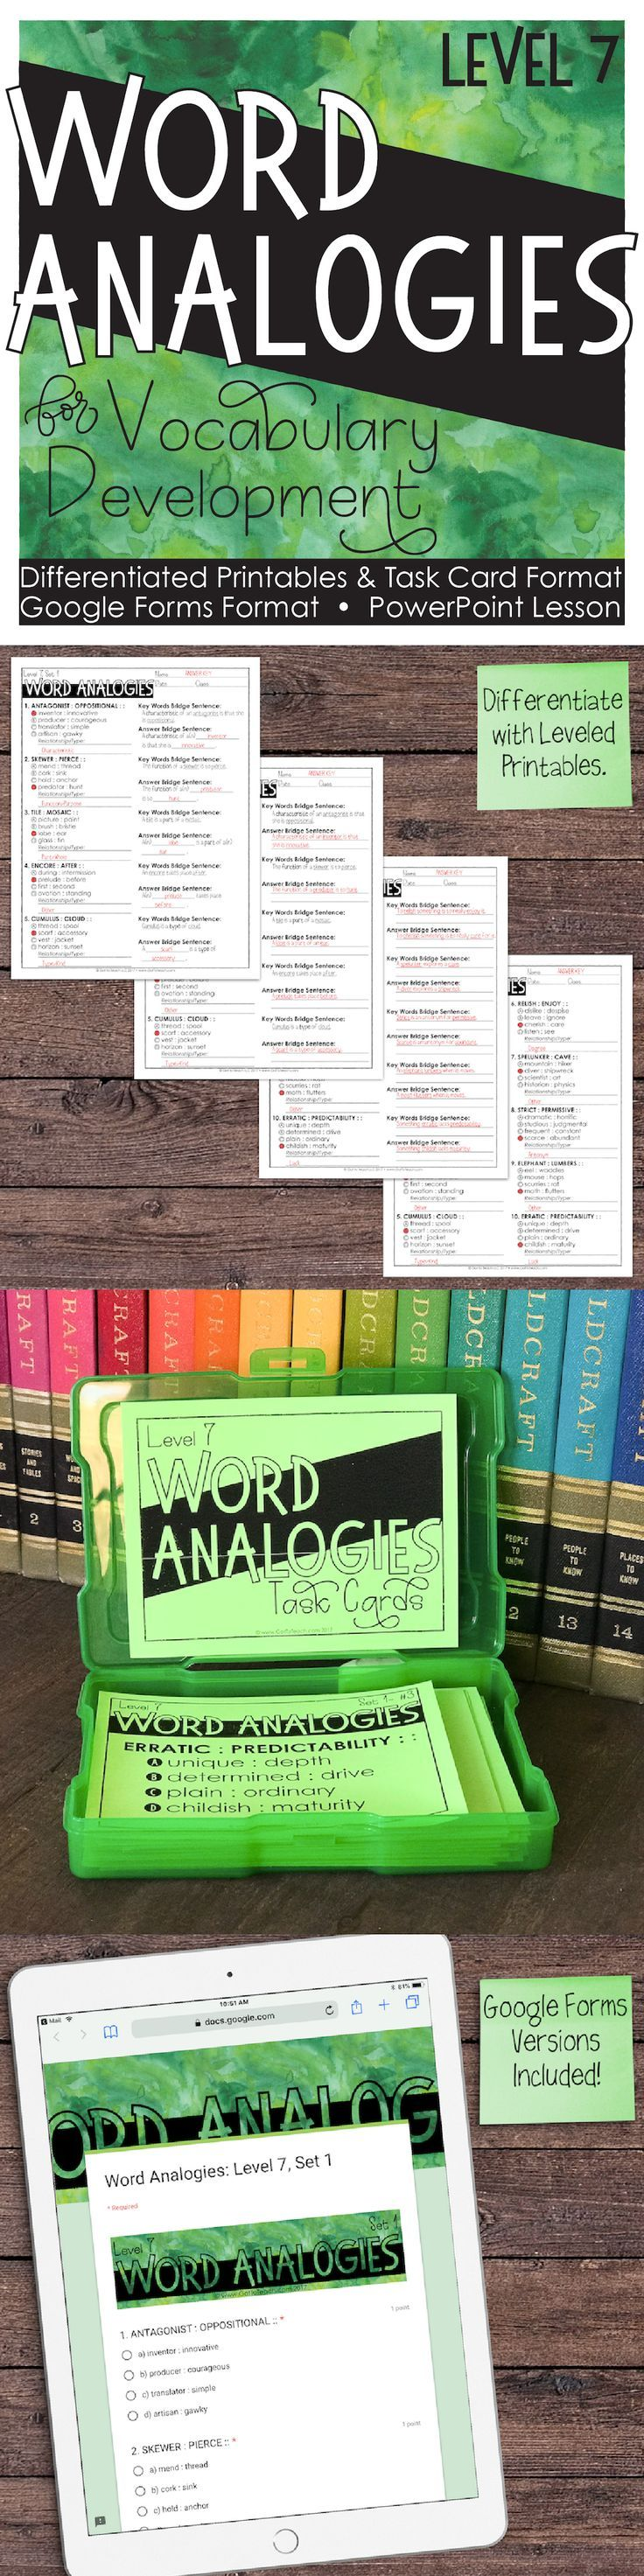 7th Grade Word Analogies That Will Get Your Students Thinking Critically While Building Vocabulary Word Analogies Teaching Vocabulary Vocabulary Instruction [ 2945 x 736 Pixel ]